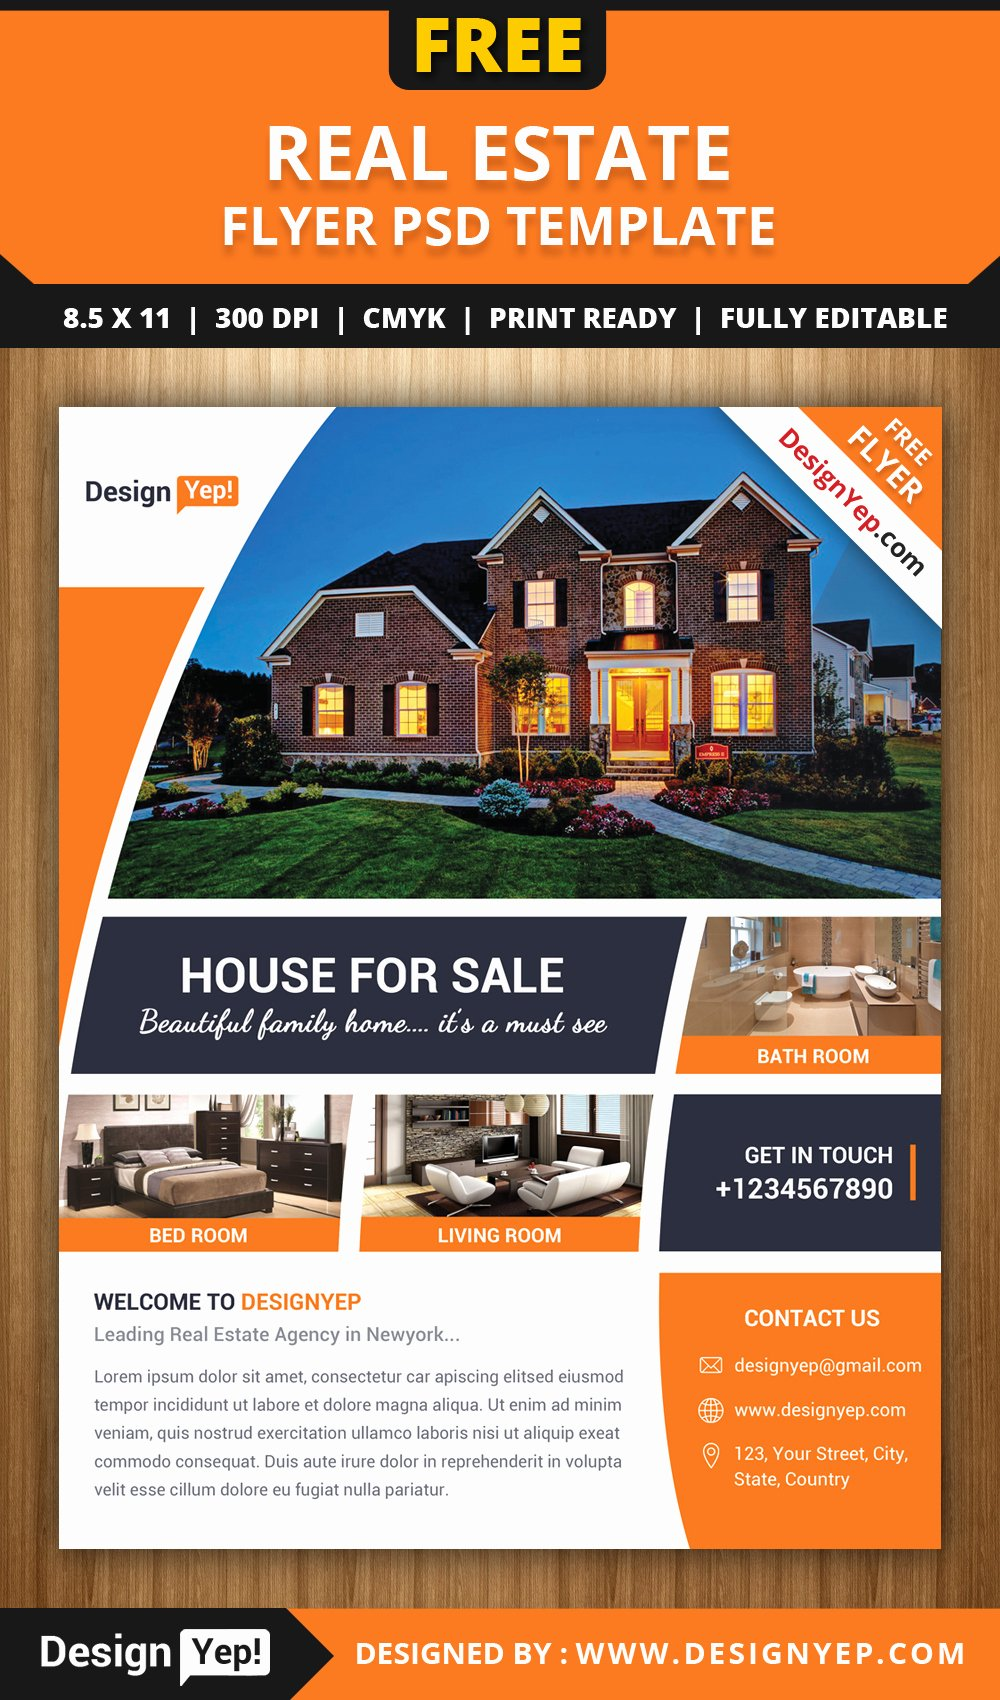 House for Sale Flyer Unique Free Real Estate Flyer Psd Template Designyep